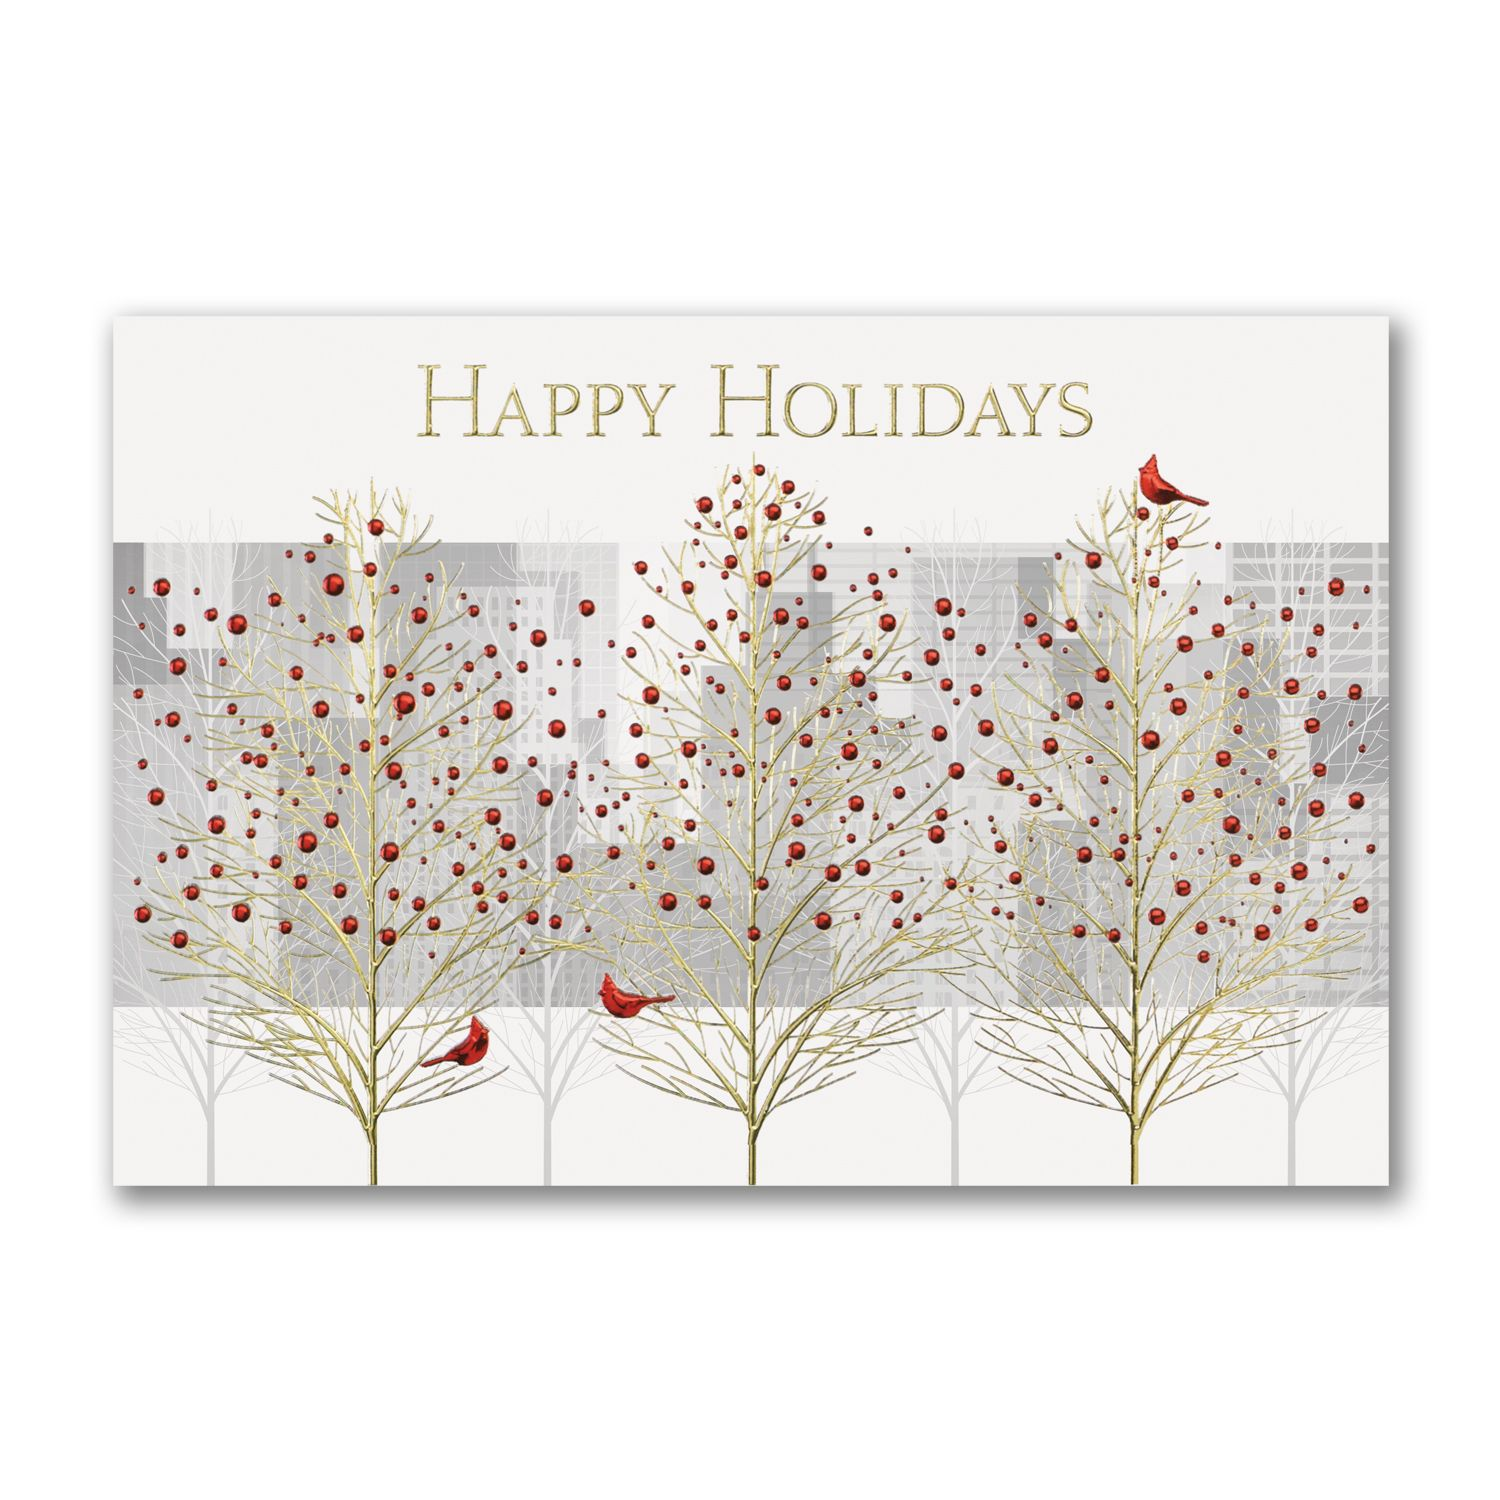 Cardinals in the city personalized holiday cards http cardinals in the city personalized holiday cards http partyblockinvitationsoccasions sa monicamarmolfo Choice Image